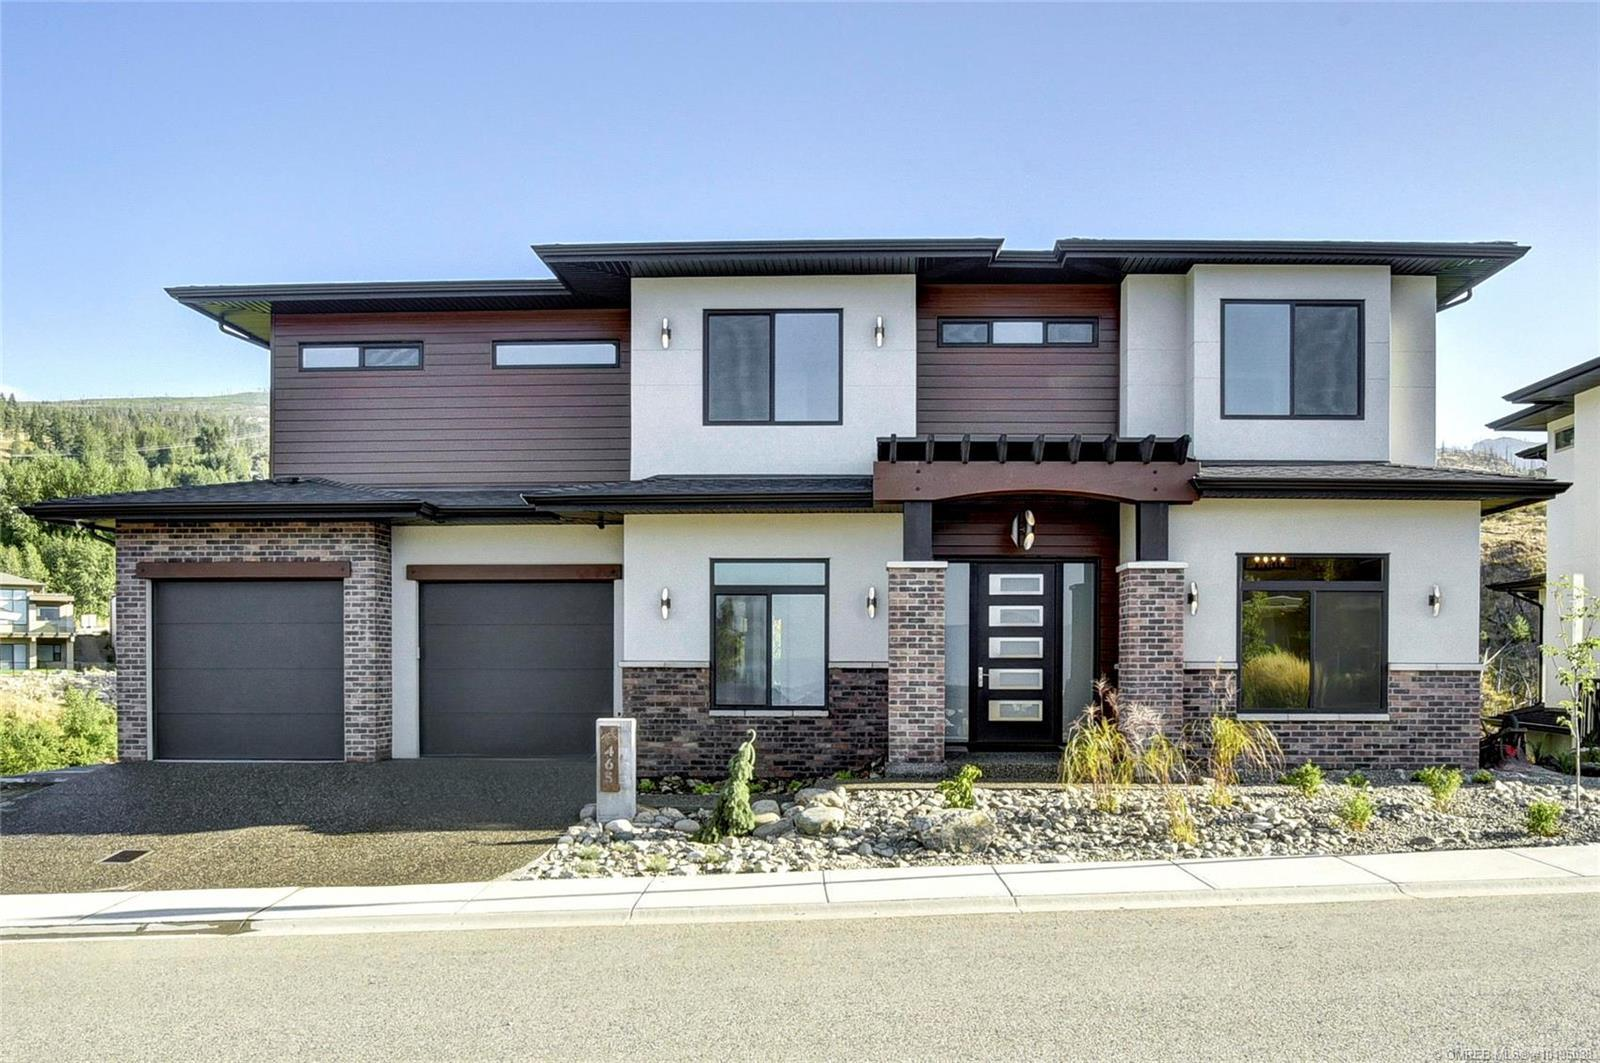 Removed: 465 Swan Drive, Kelowna, BC - Removed on 2020-03-01 19:57:11